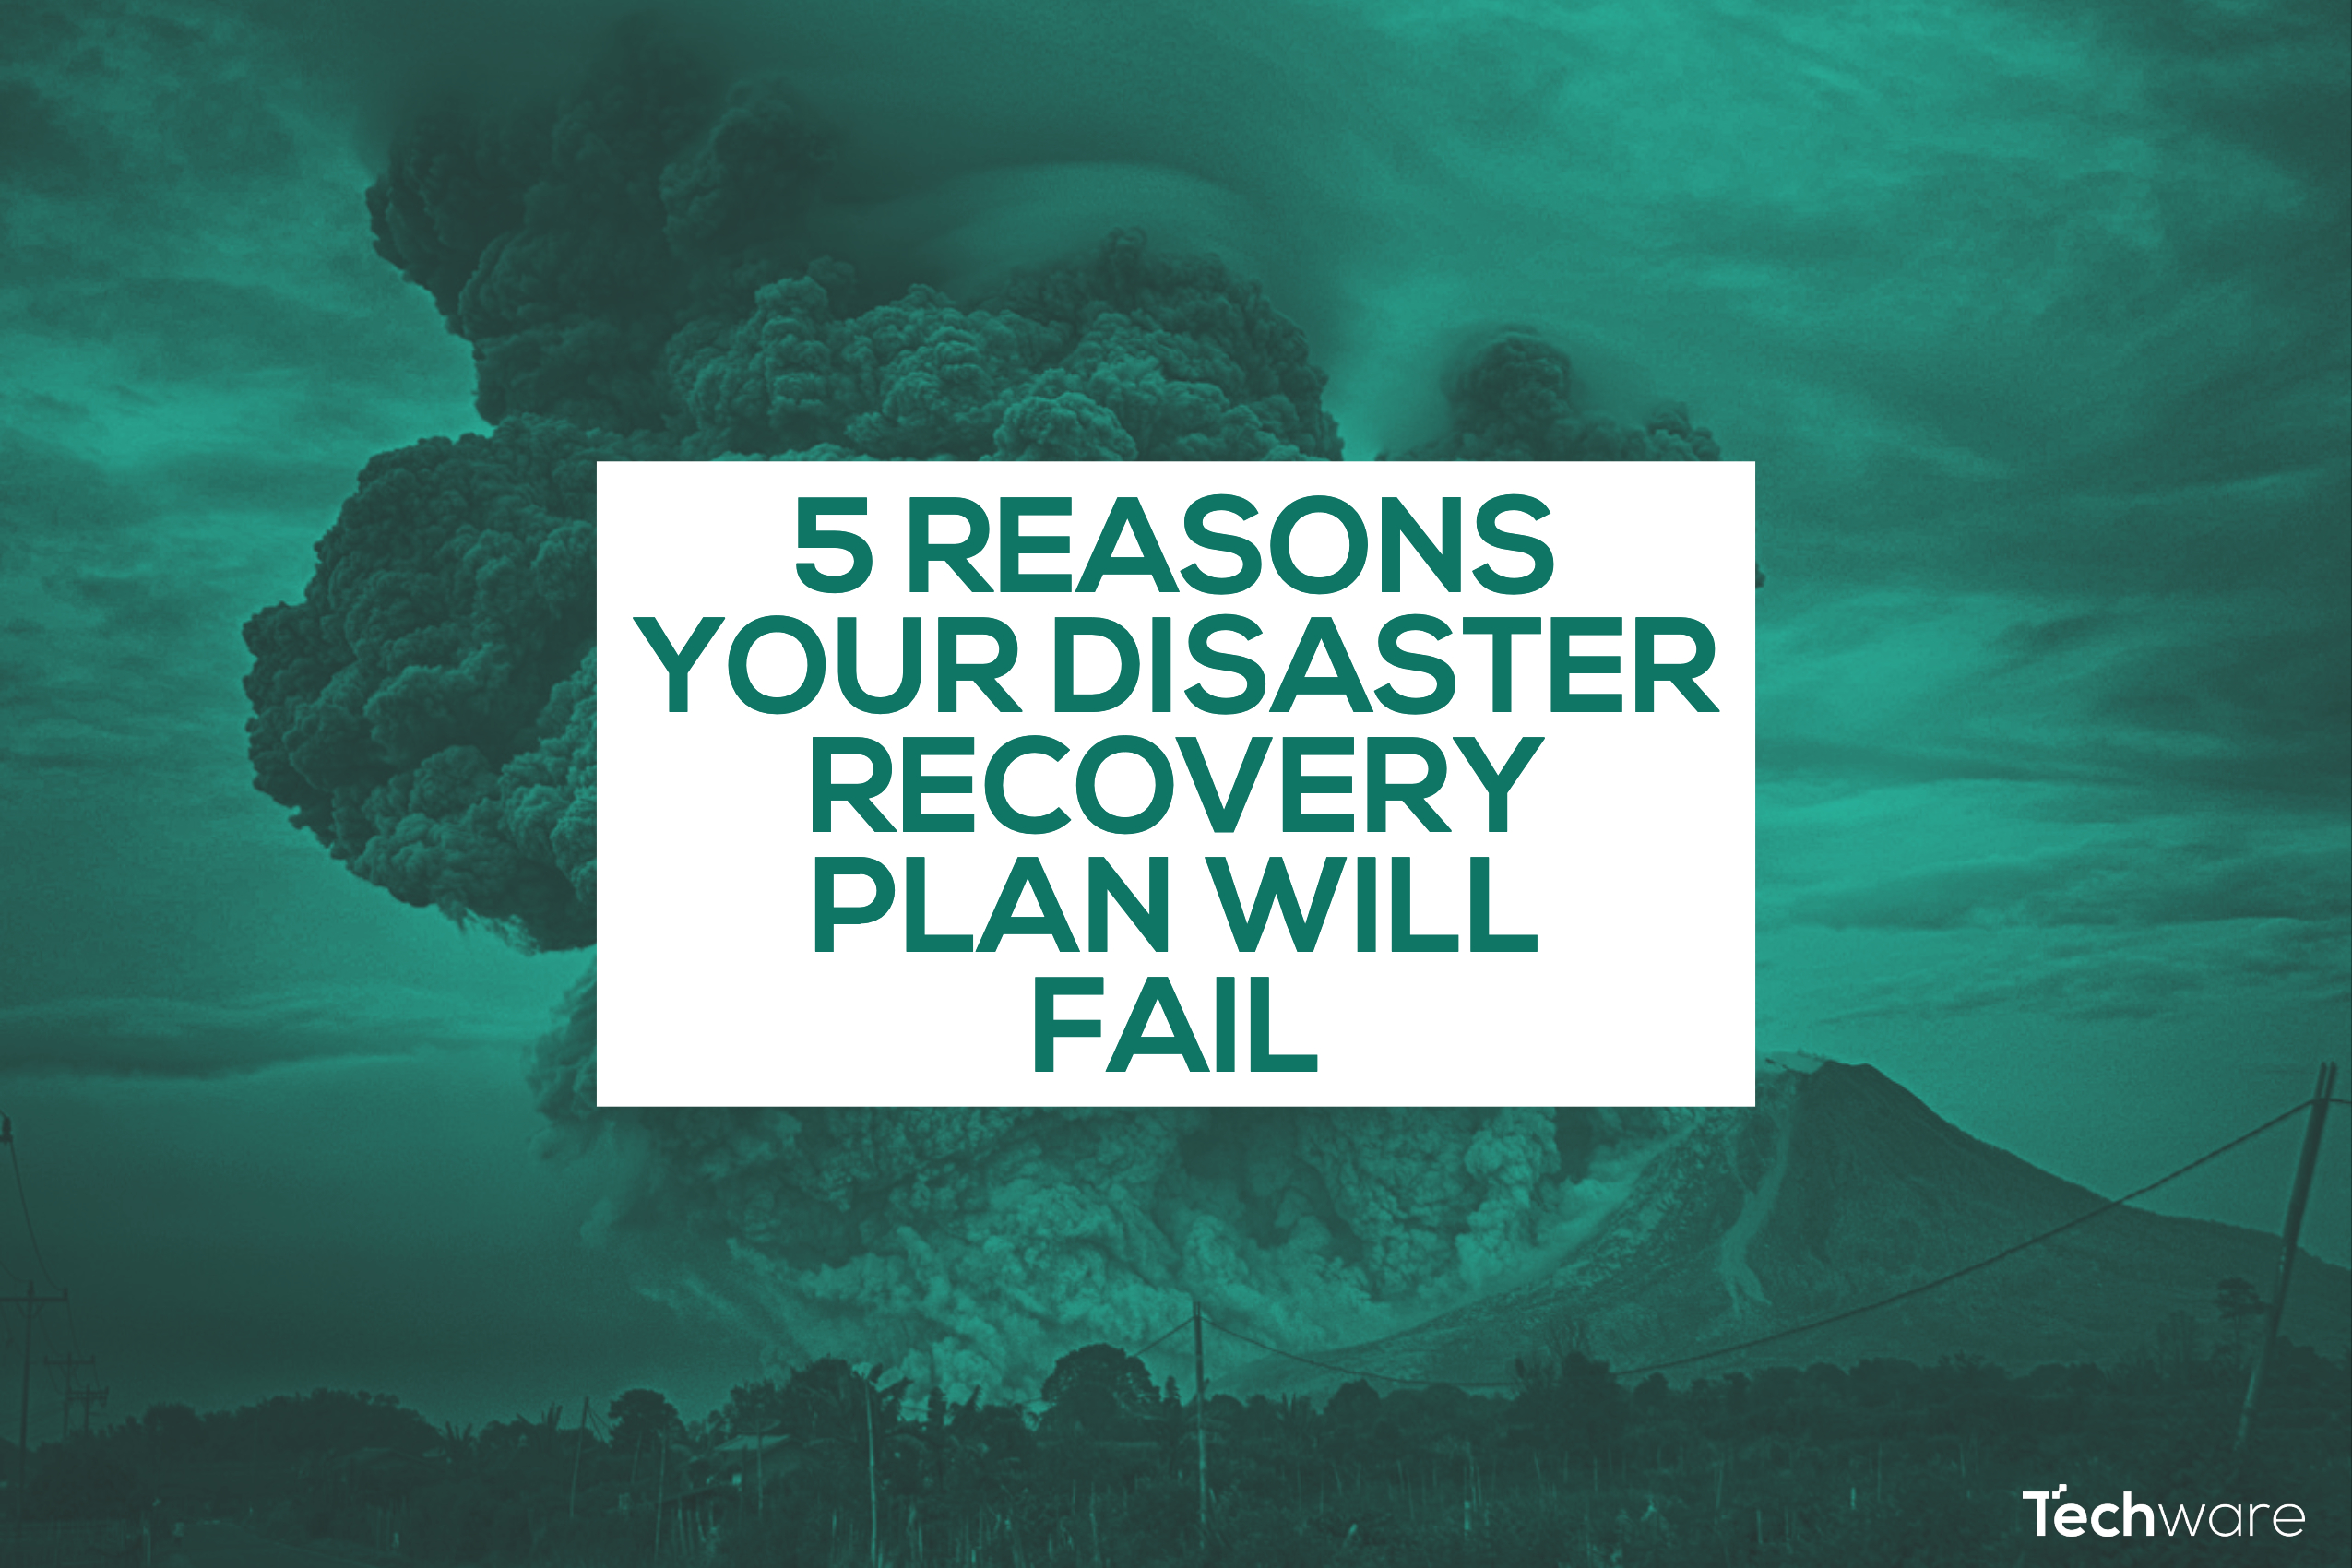 5 Reasons Your Disaster Recovery Plan Will Fail